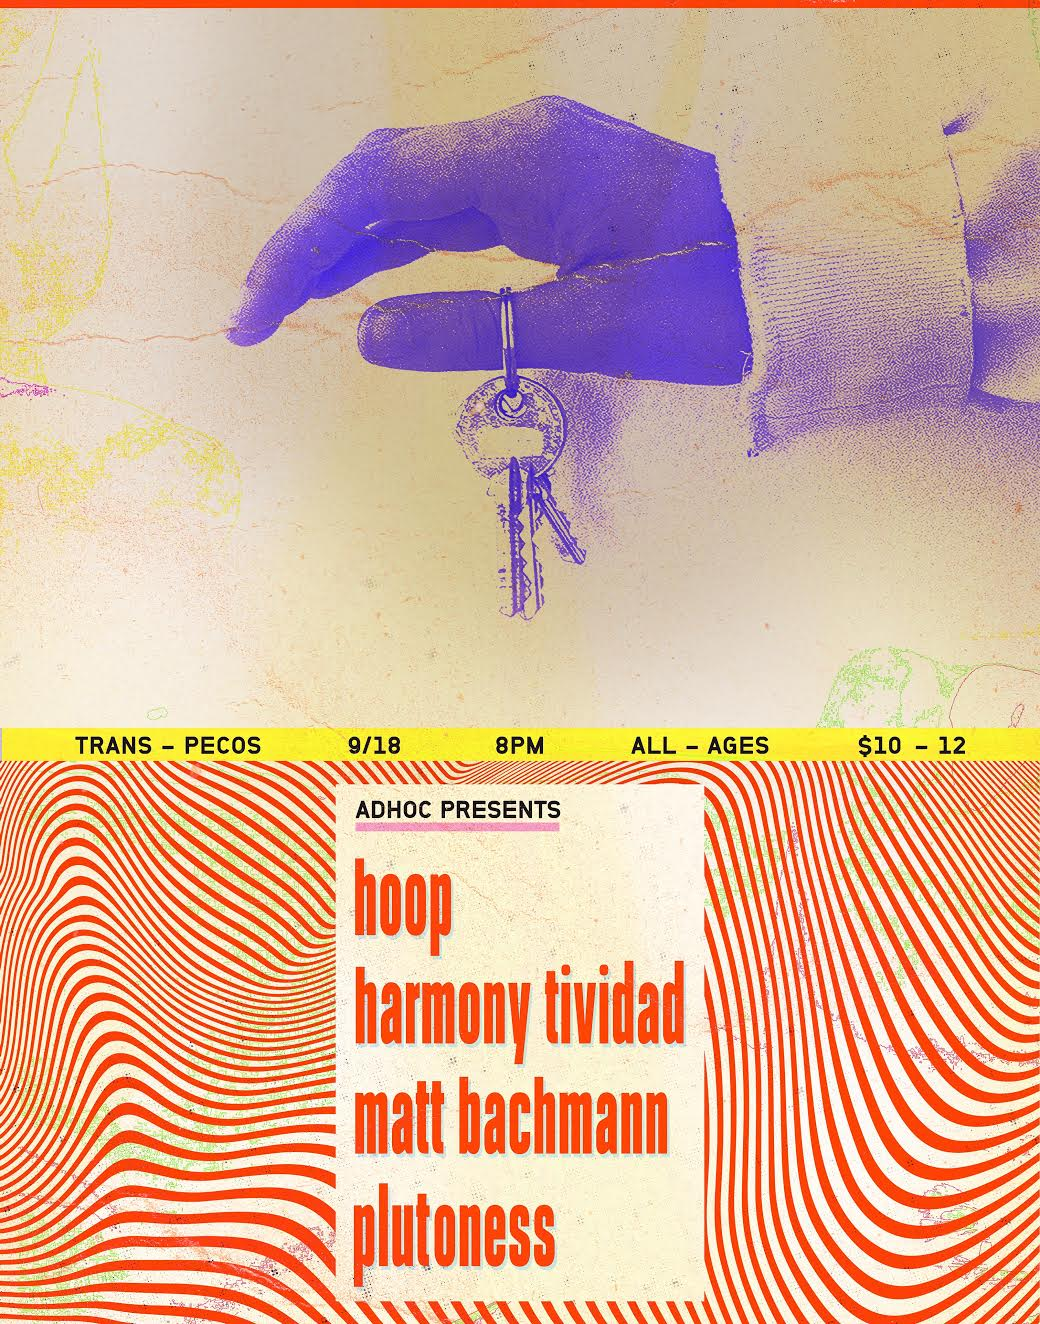 Tuesday September 18th at  Trans-Pecos    AdHoc  Presents   Hoop  Harmony Tividad (of  Girlpool )  Matt Bachmann / Big Eater  Plutoness  | Trans-Pecos | 915 Wyckoff Ave @ Weirfield | Ridgewood, Queens L-Halsey, LM-Myrtle Wyckoff | $10+ | all ages